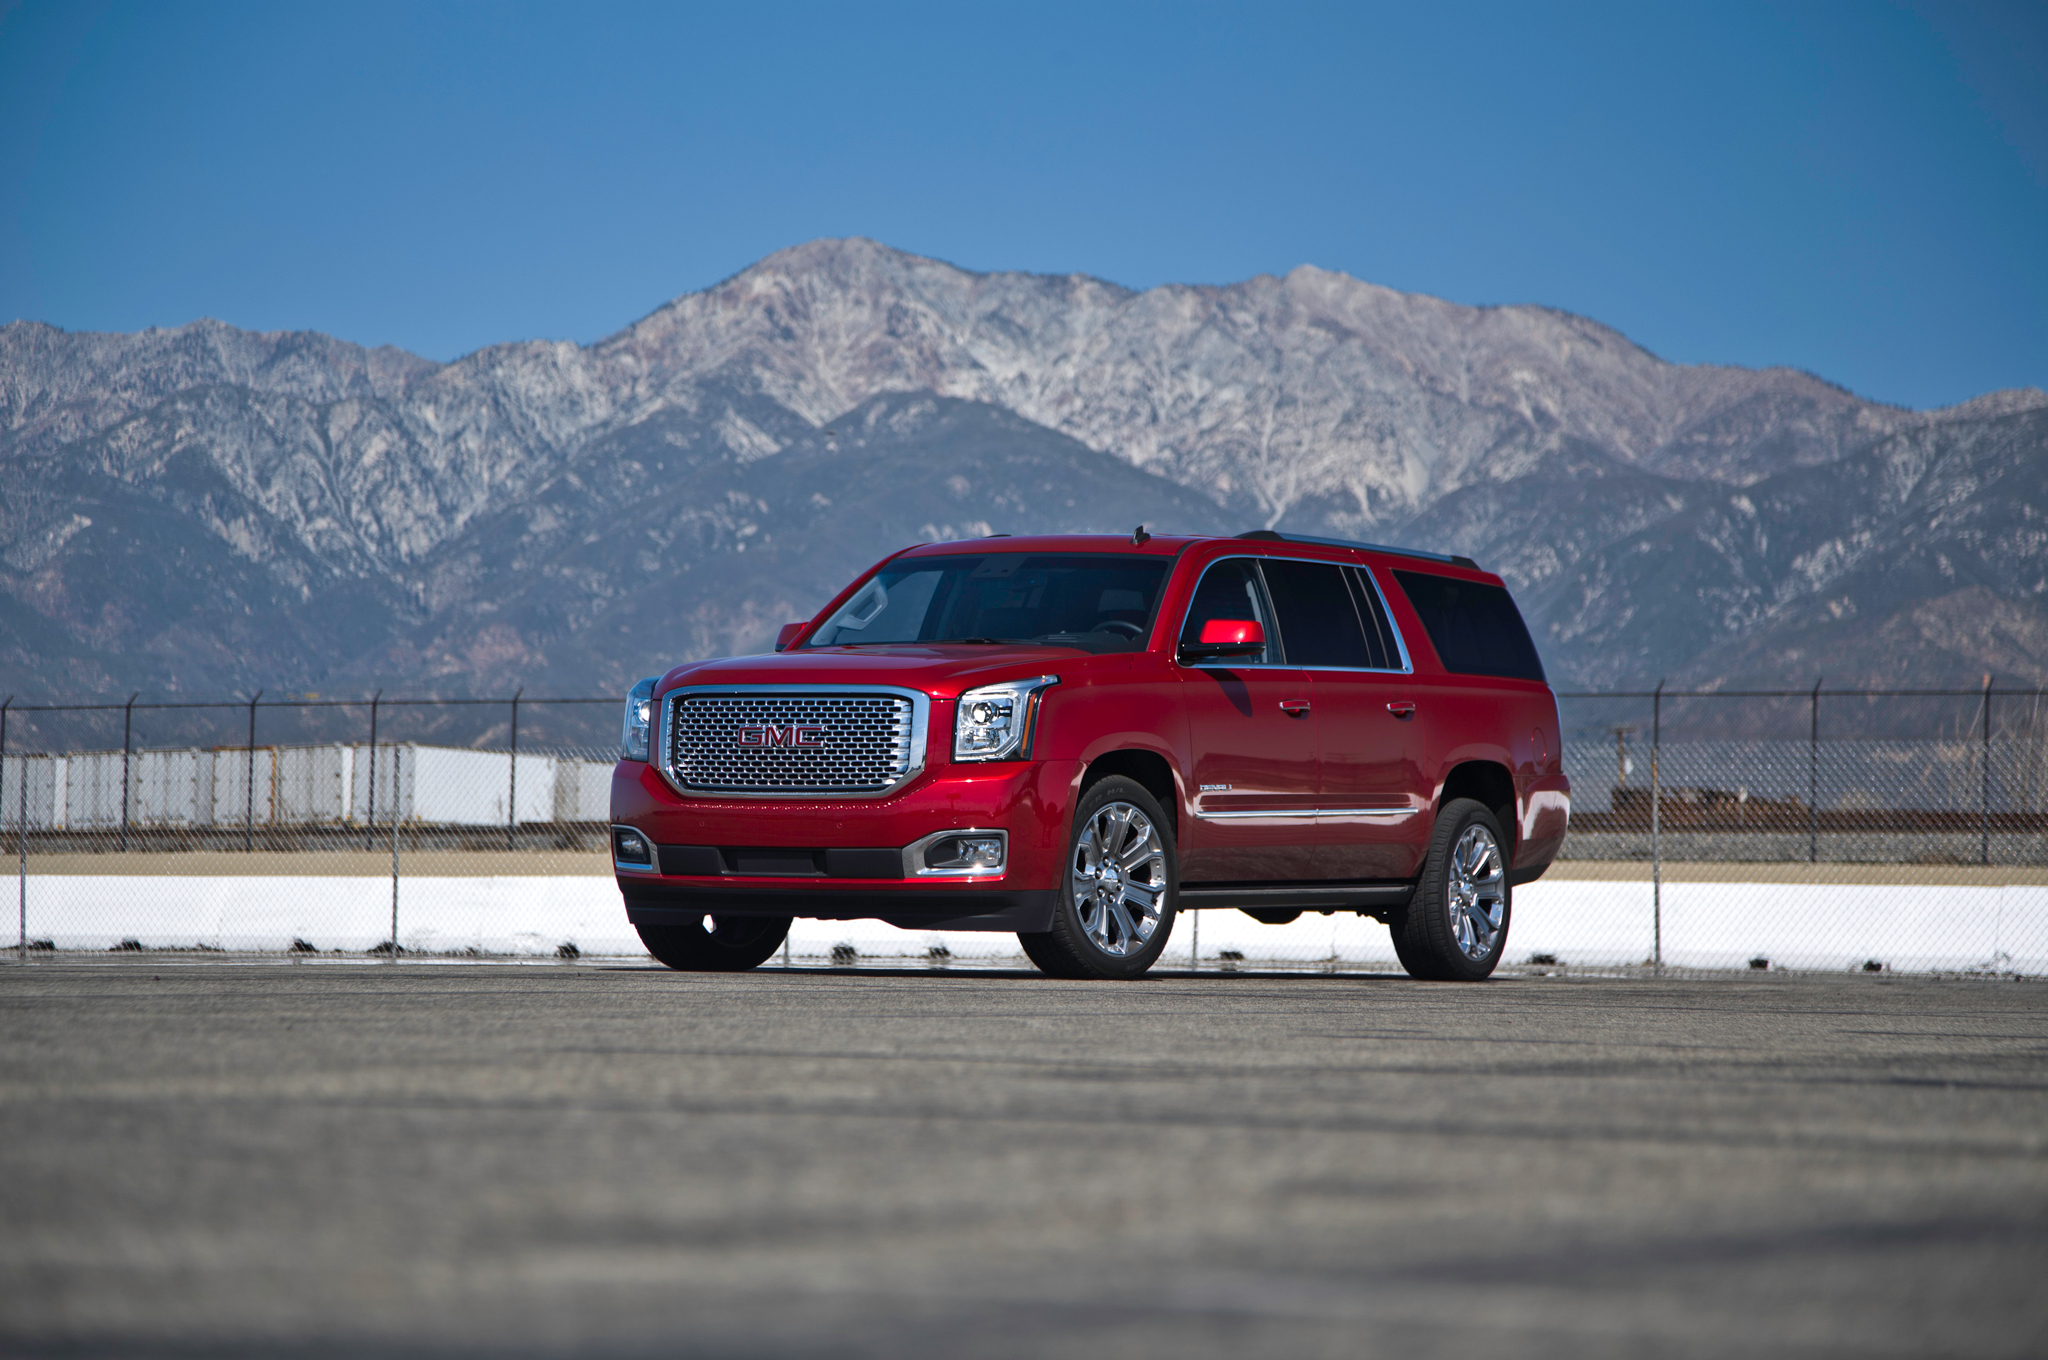 canadian model specifications auto yukon reviews gmc review tahoe denali